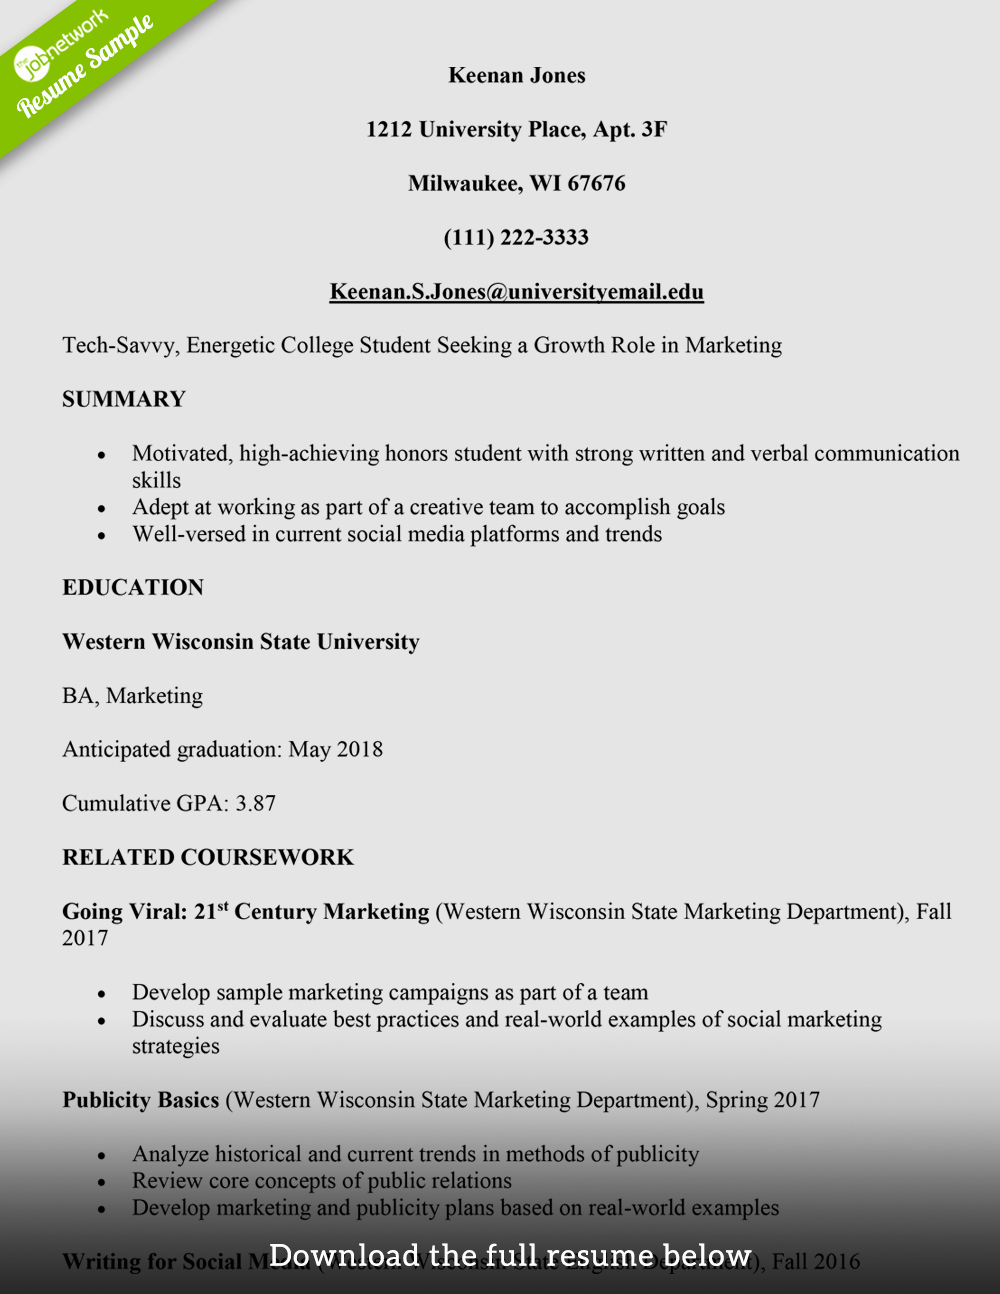 Resume Template College Student Fresh How to Write A College Student Resume with Examples